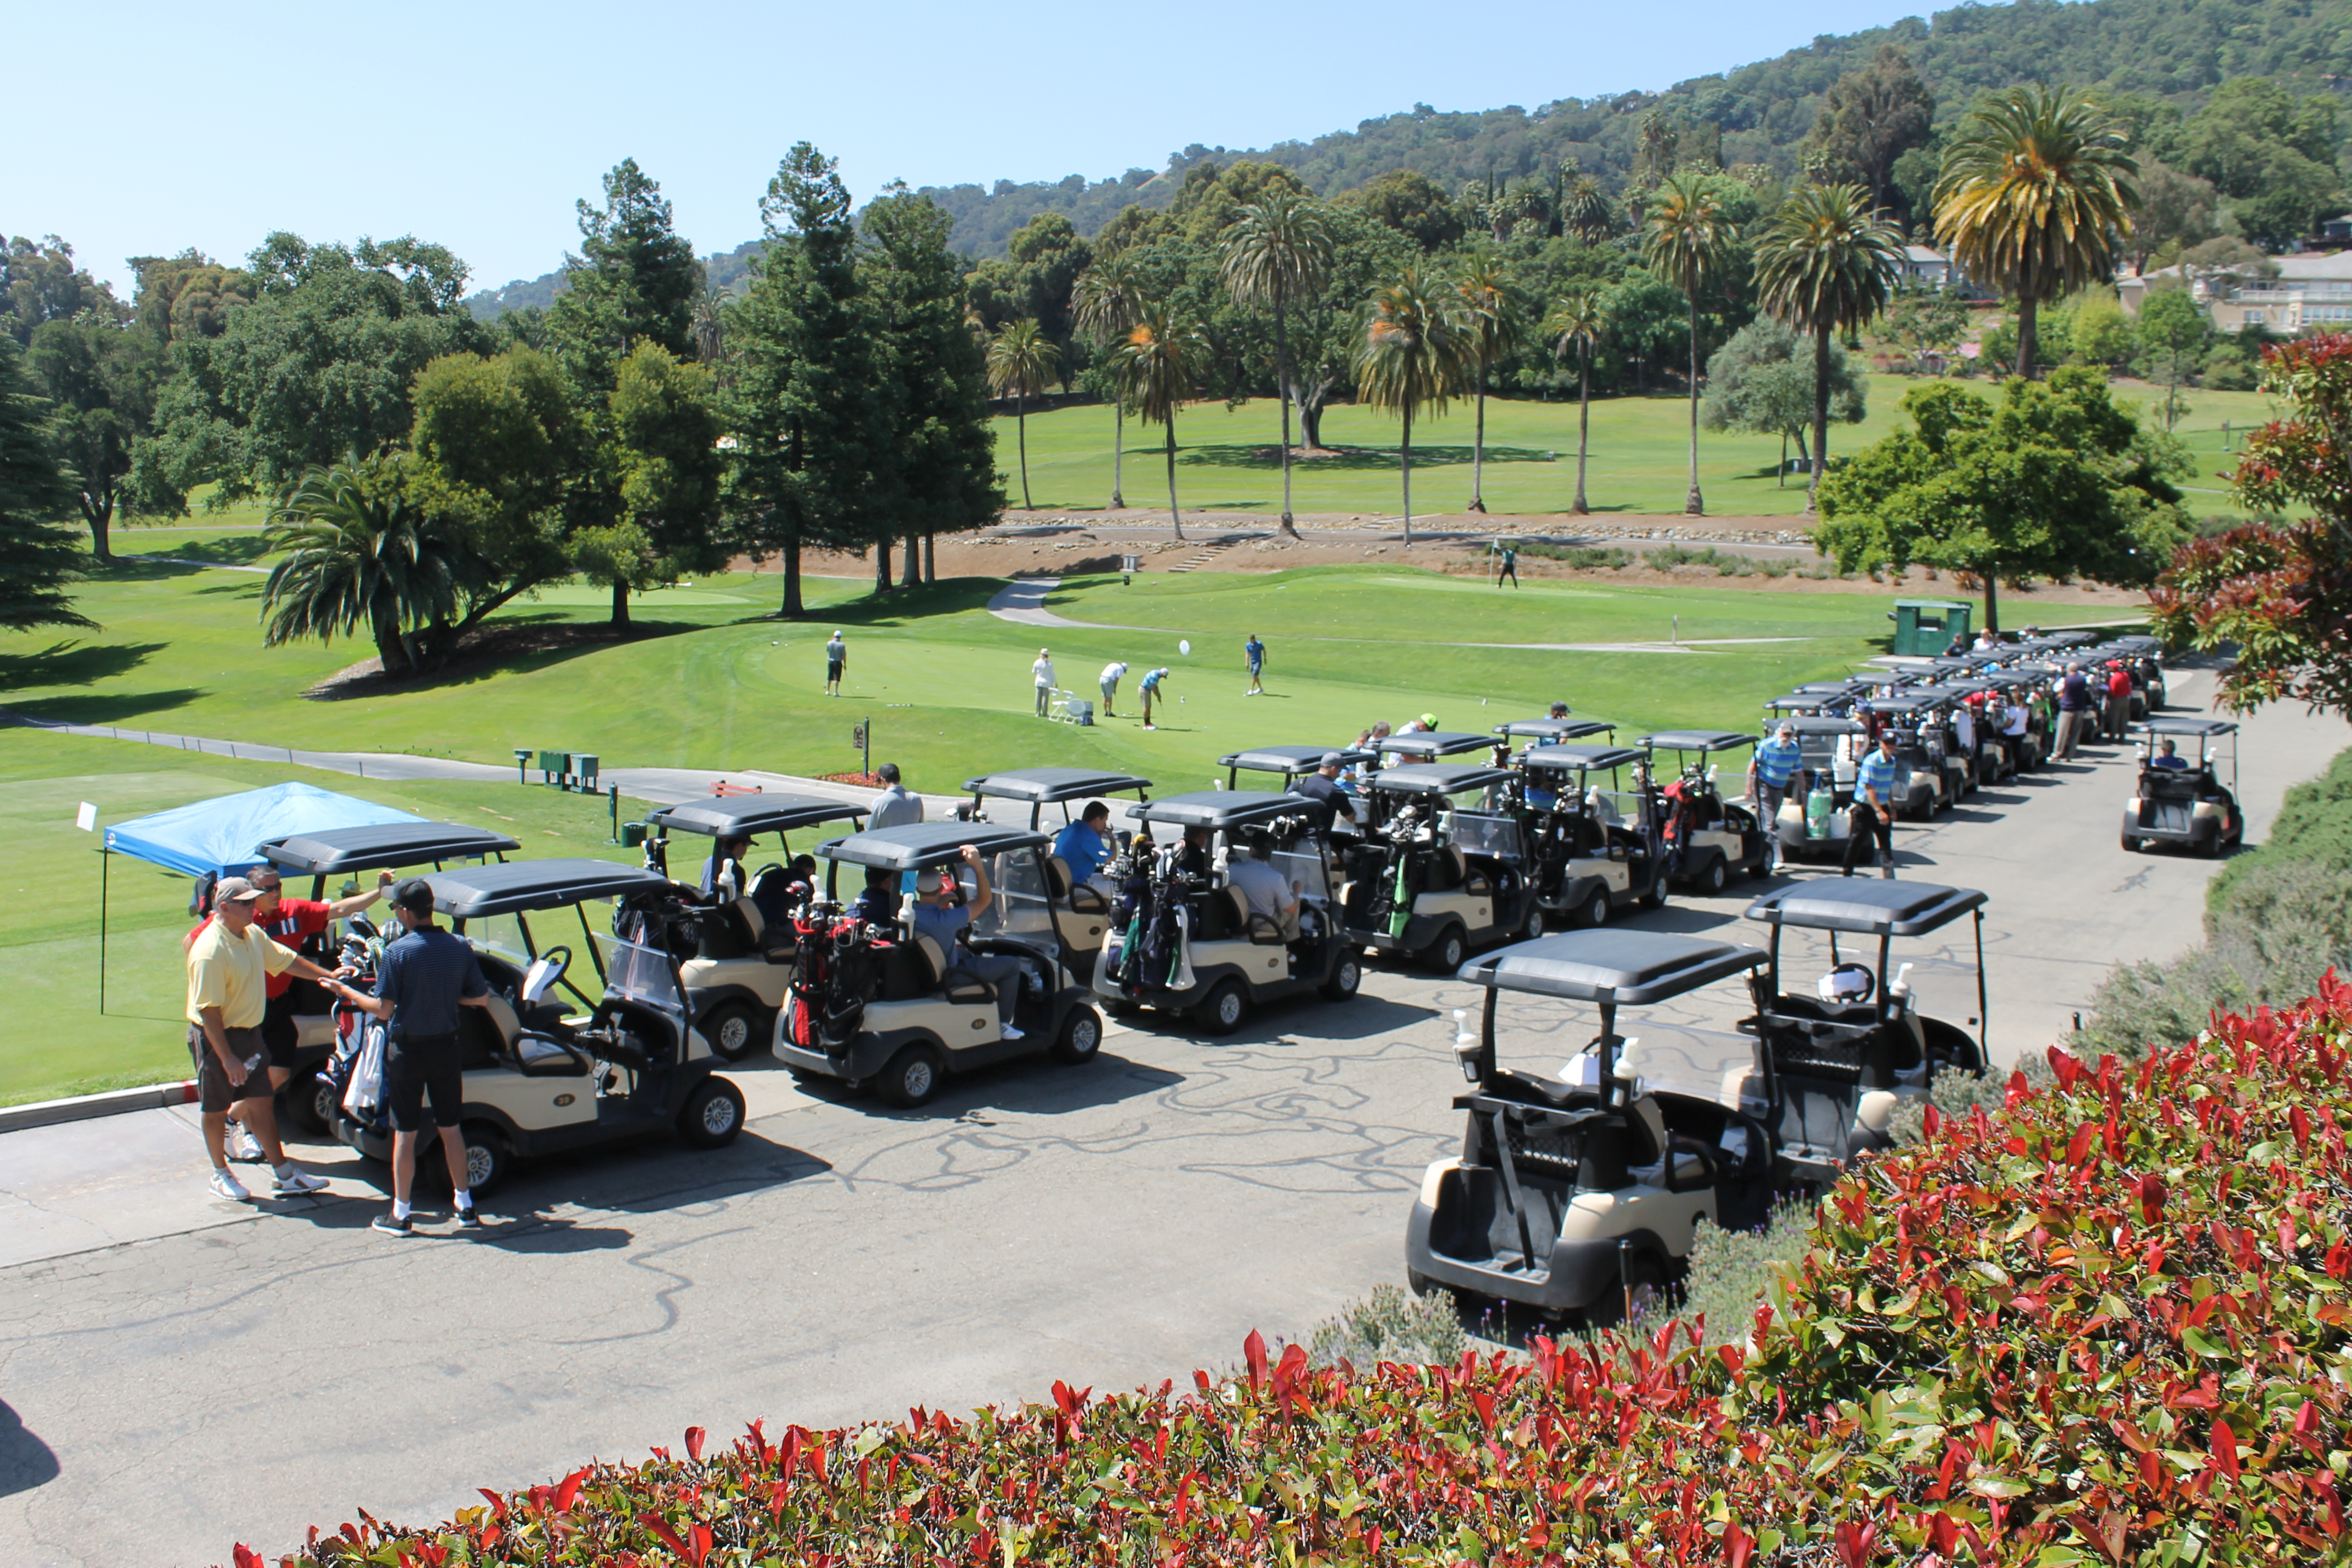 35th and Final Golf Tournament